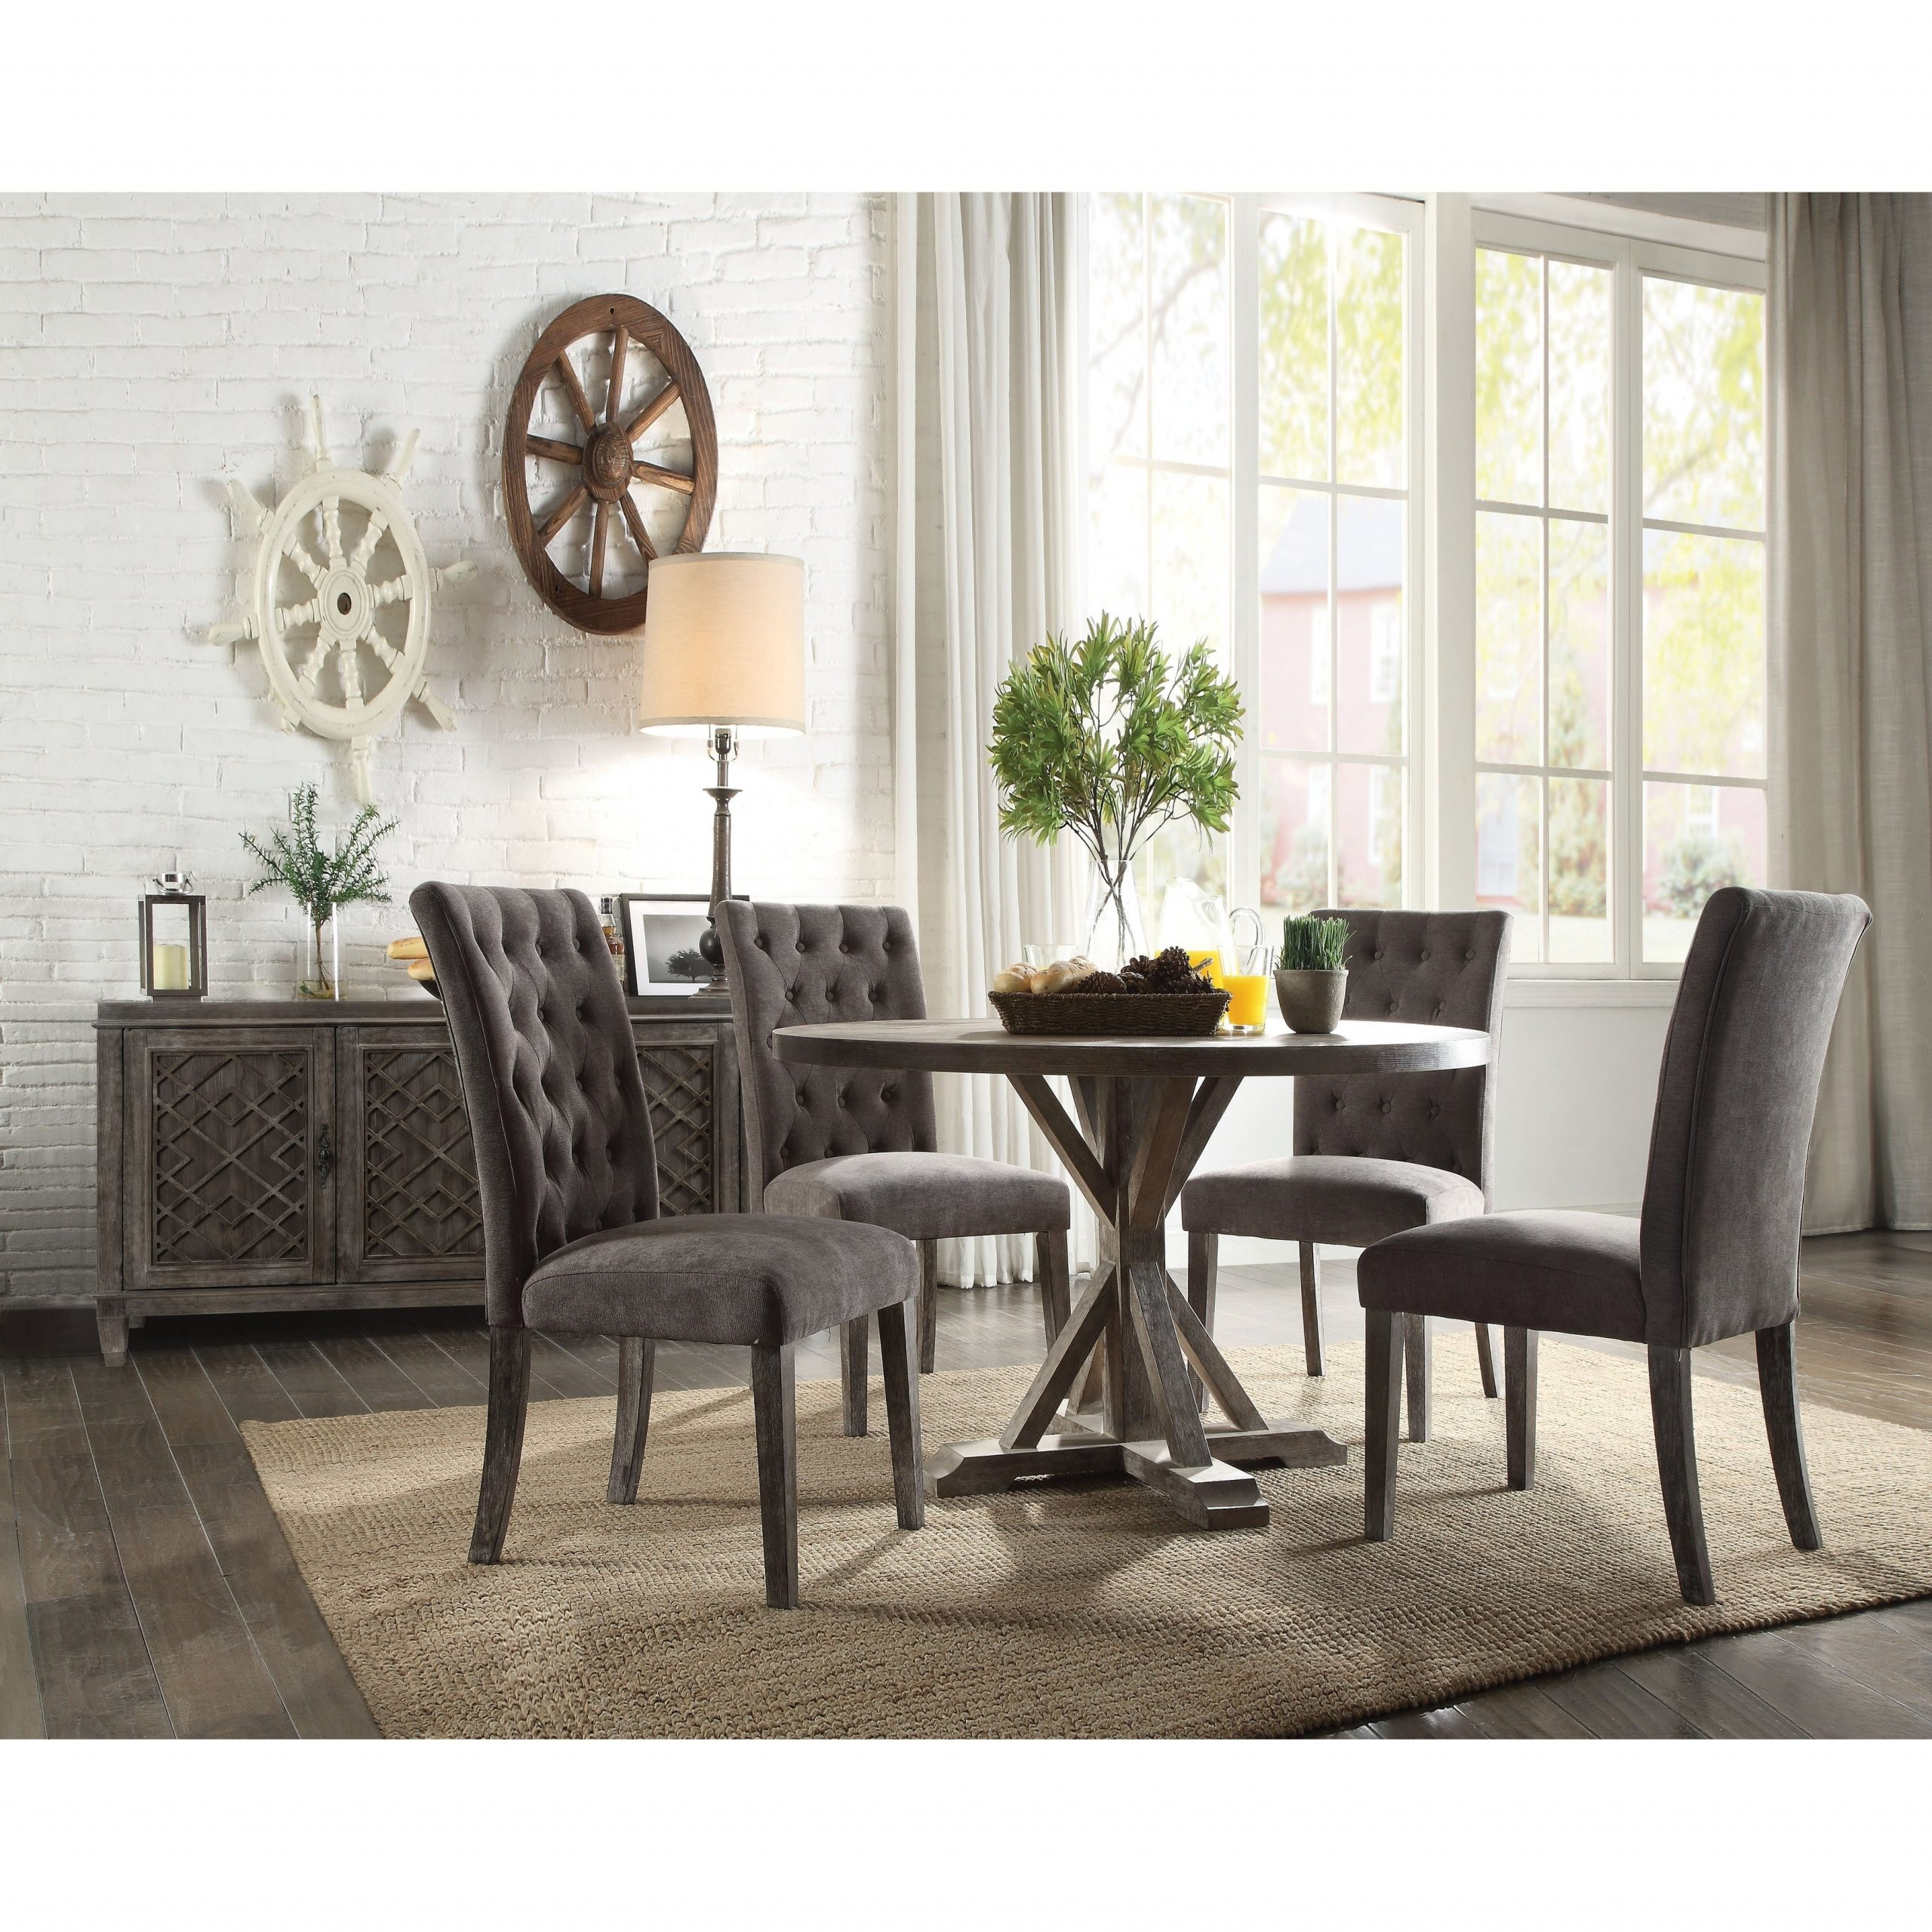 Acme Carmelina Dining Table In Weathered Gray Oak With Regard To Most Current Hearst Oak Wood Dining Tables (Image 5 of 25)